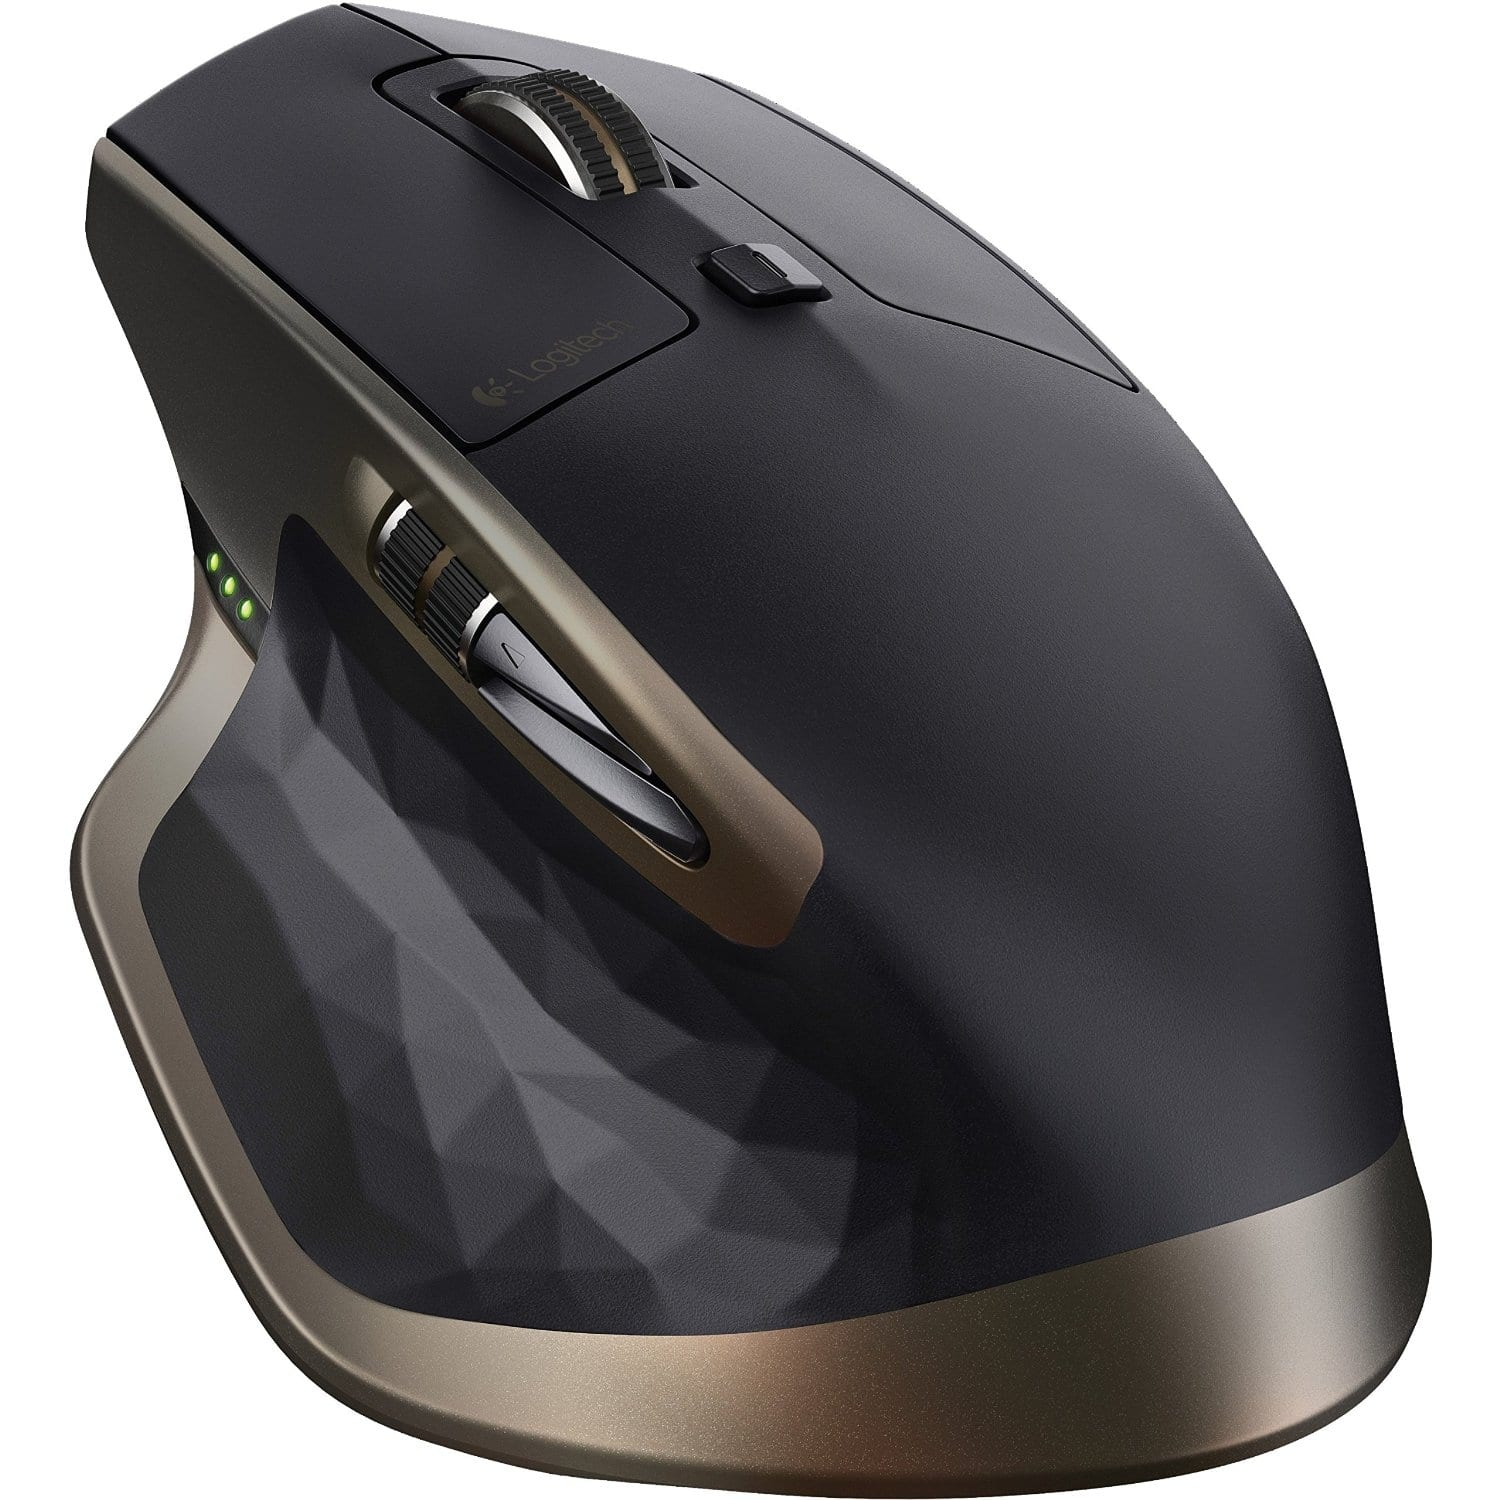 Logitech MX Master Wireless Mouse for $55.95 with FS from Rakuten